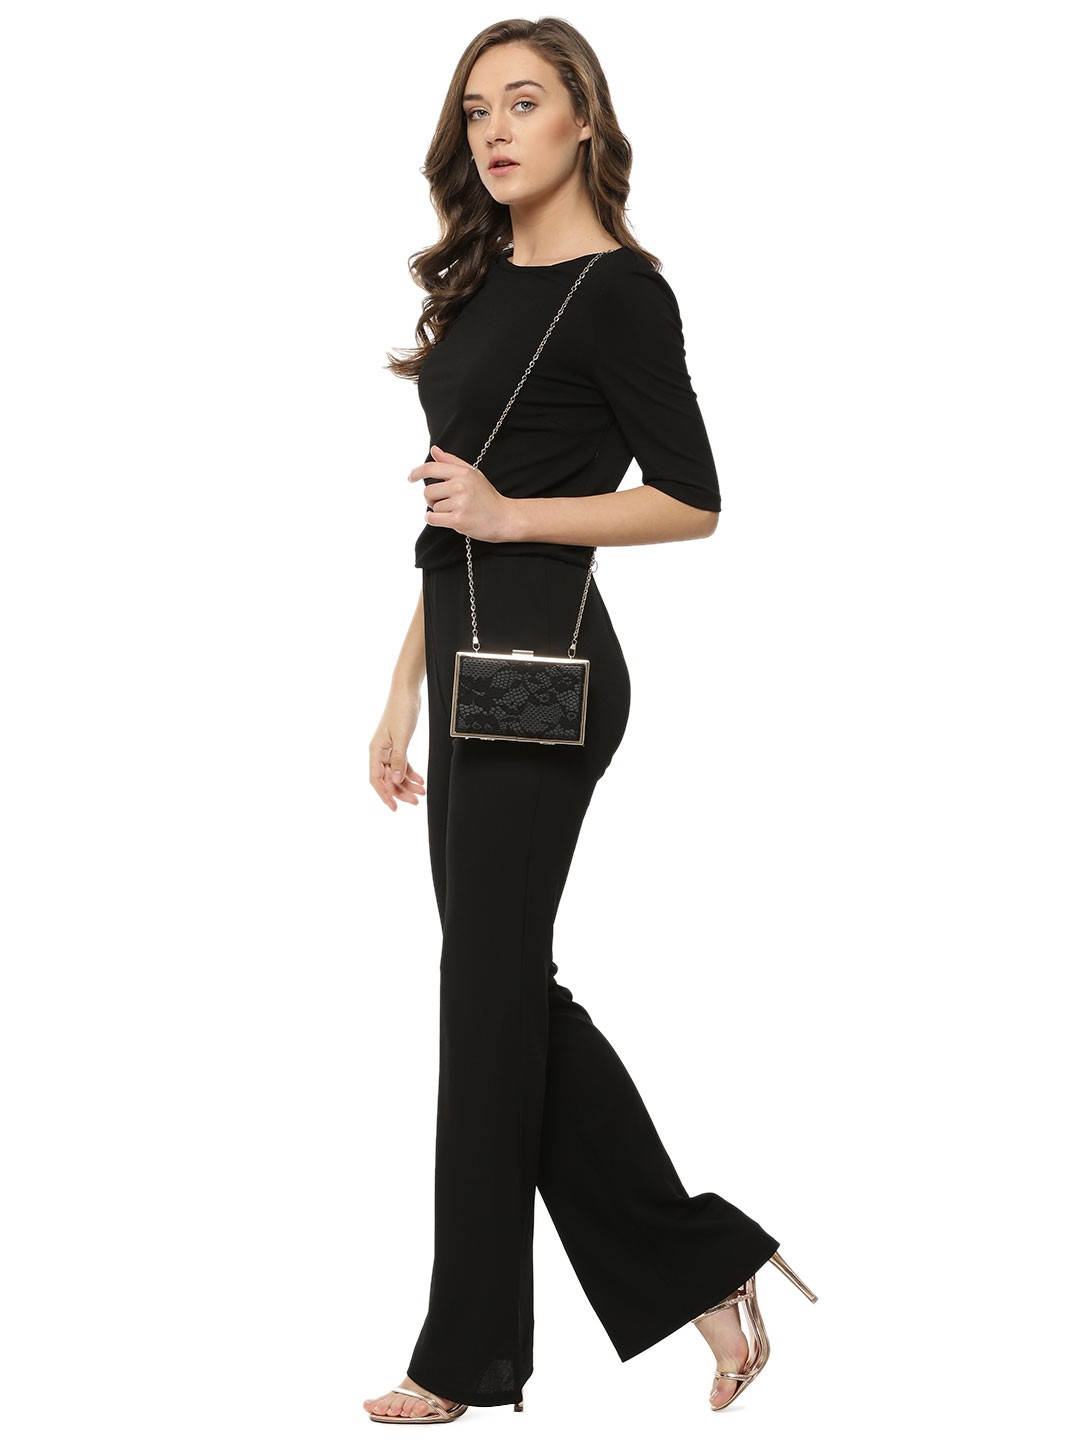 buy vero moda flare jumpsuit for women women 39 s black jumpsuits online in india. Black Bedroom Furniture Sets. Home Design Ideas